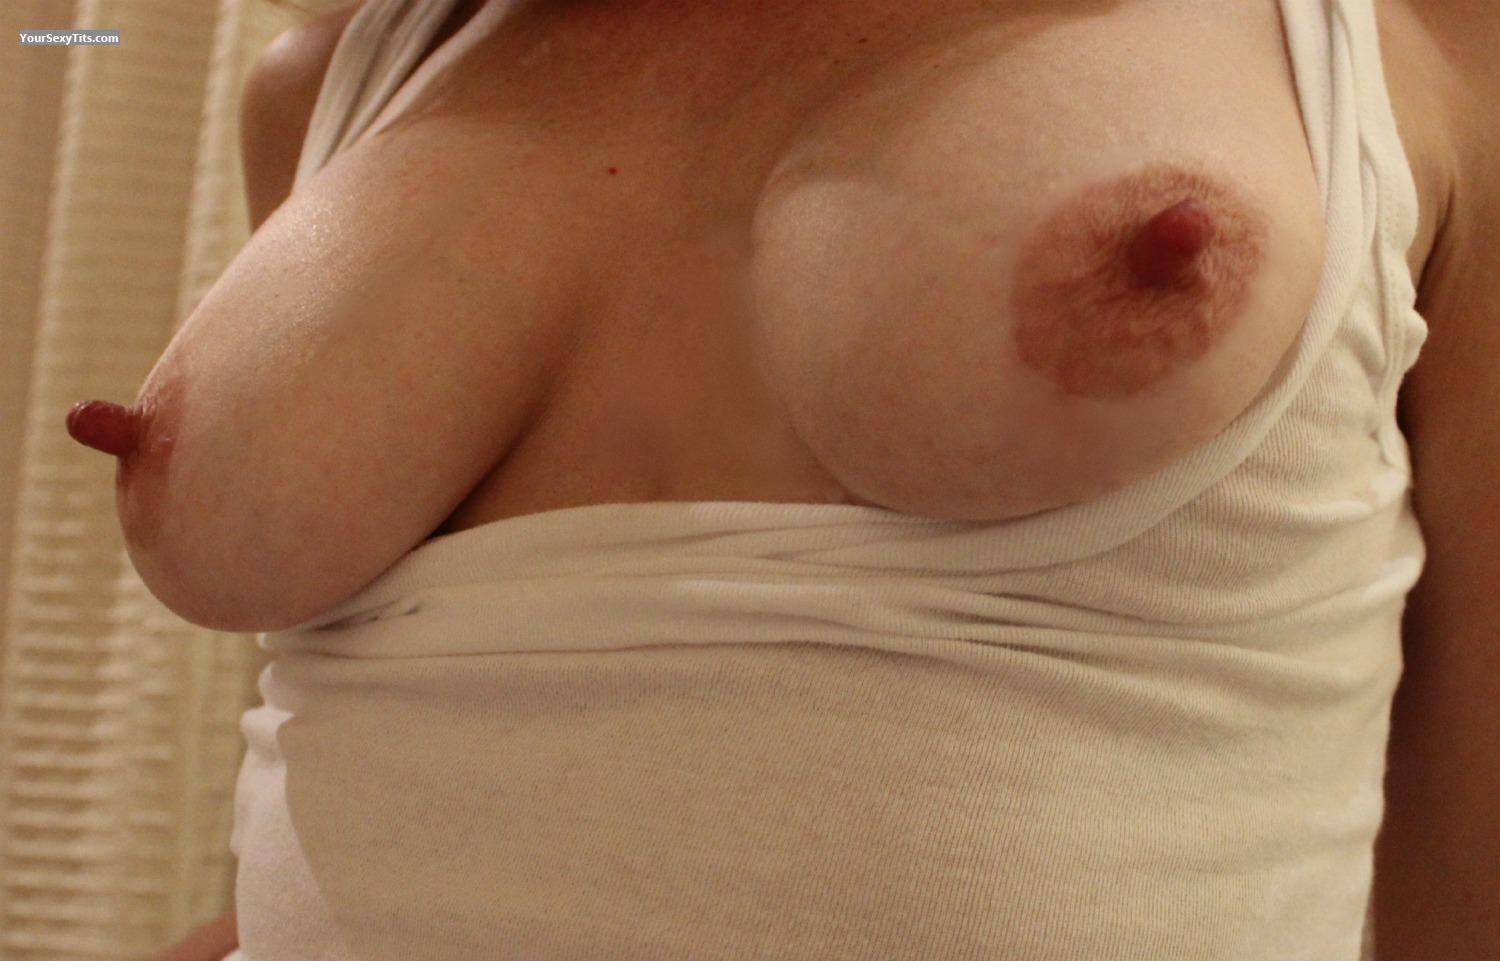 Big Nipples on Small Girl With Small Tits - Free Porn